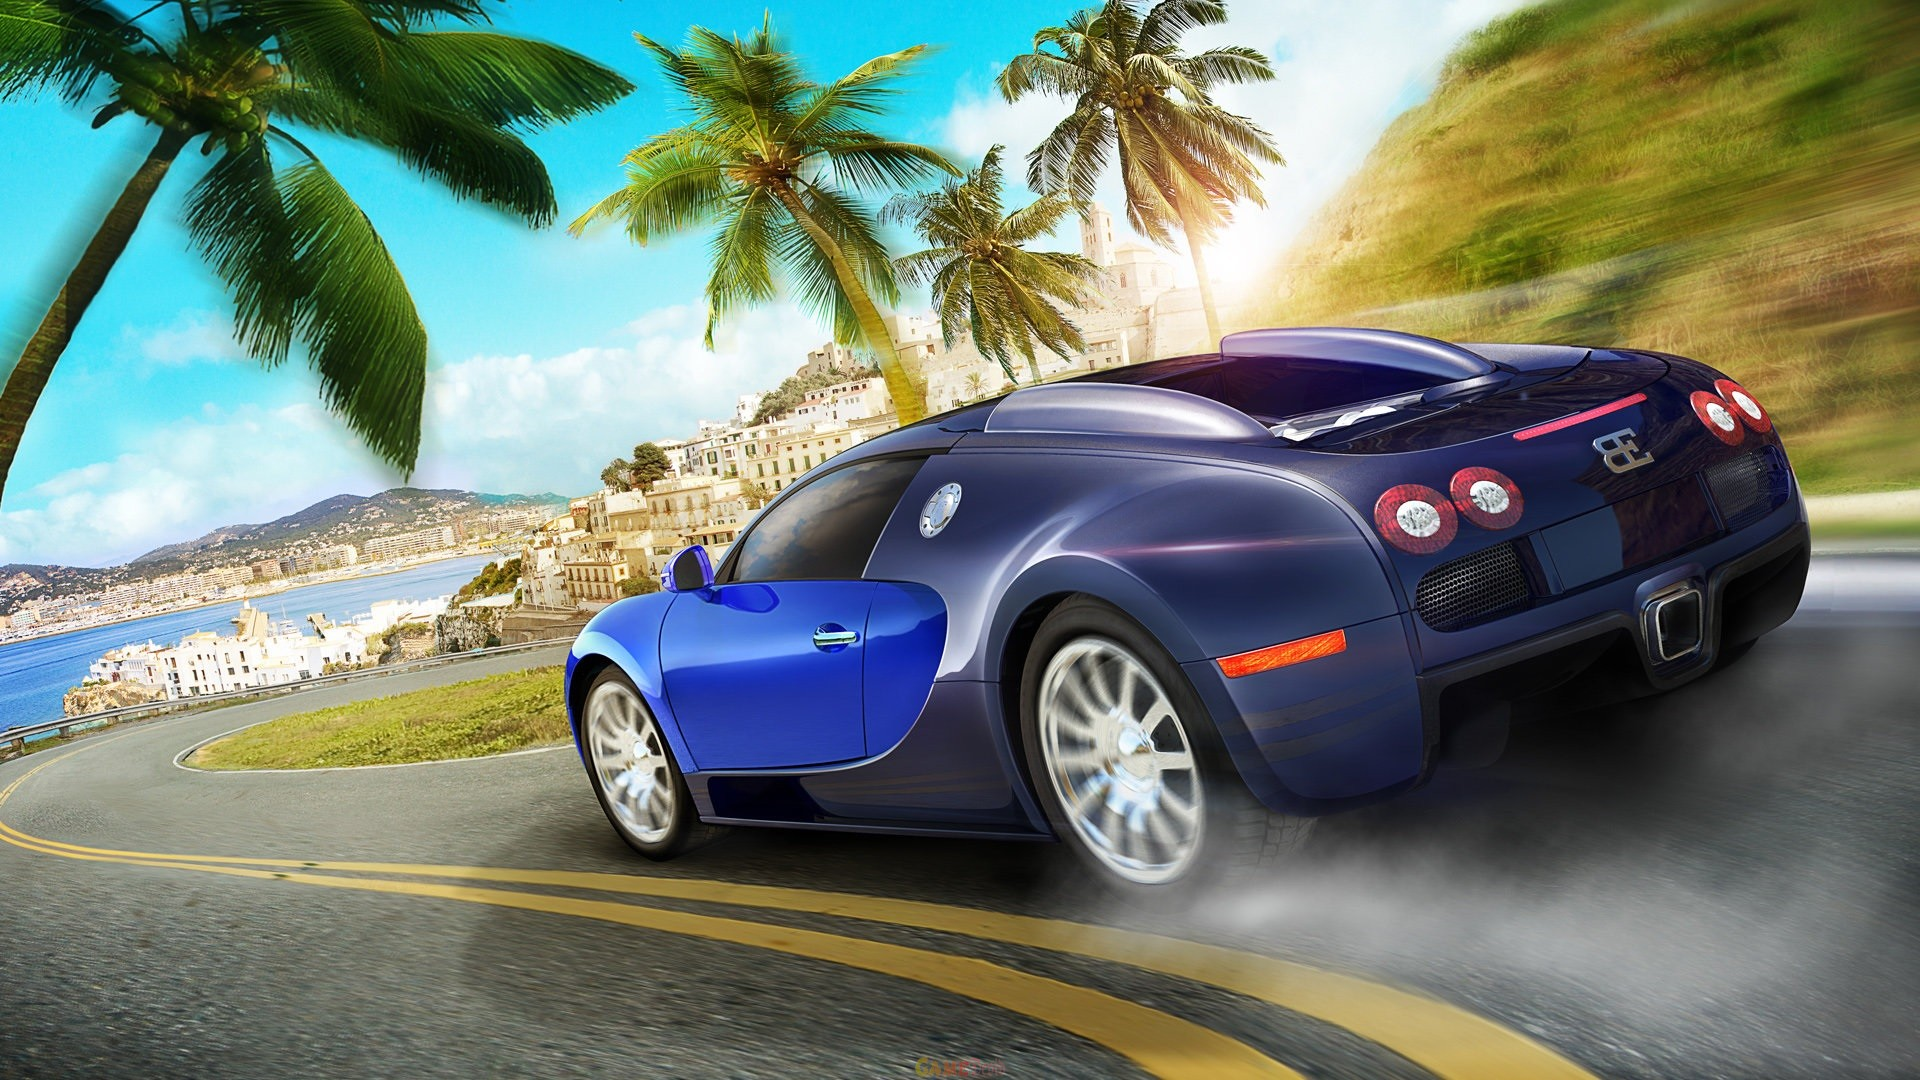 TEST DRIVE UNLIMITED 2 NINTENDO SWITCH GAME FREE DOWNLOAD